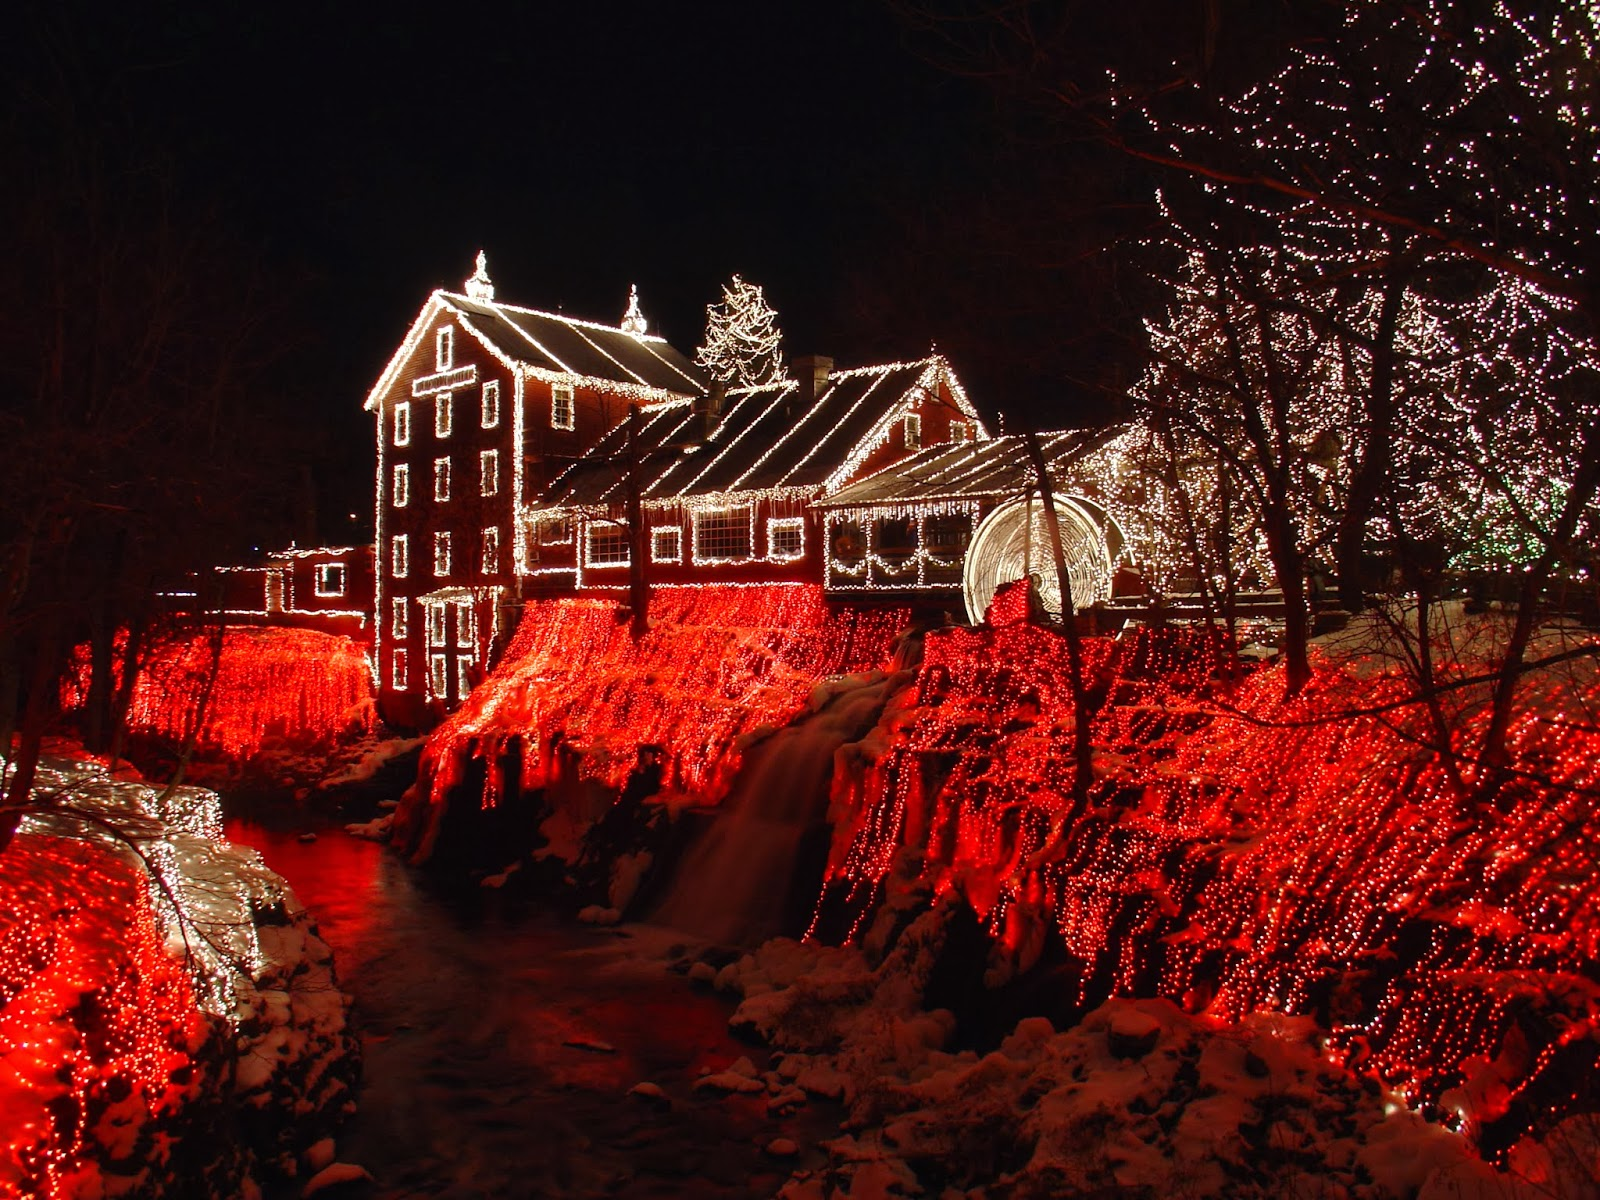 The Merry Dressmaker: The Lights at Clifton Mill